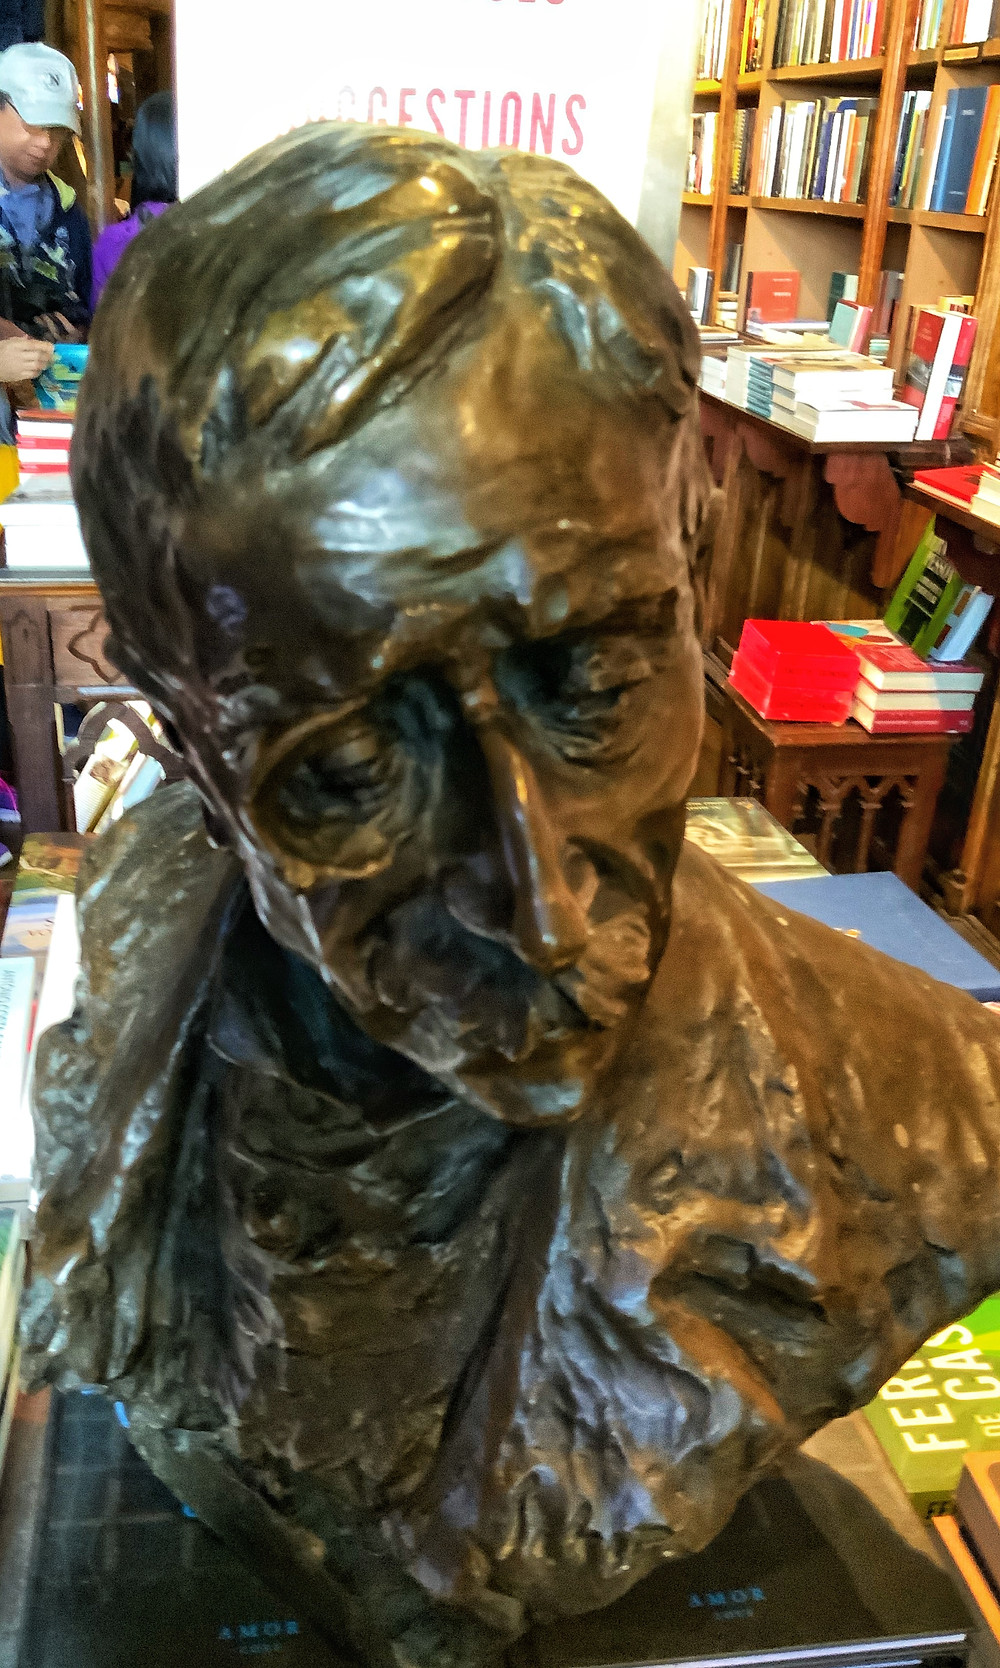 one of the bronze busts of Portuguese writers scattered throughout the bookstore